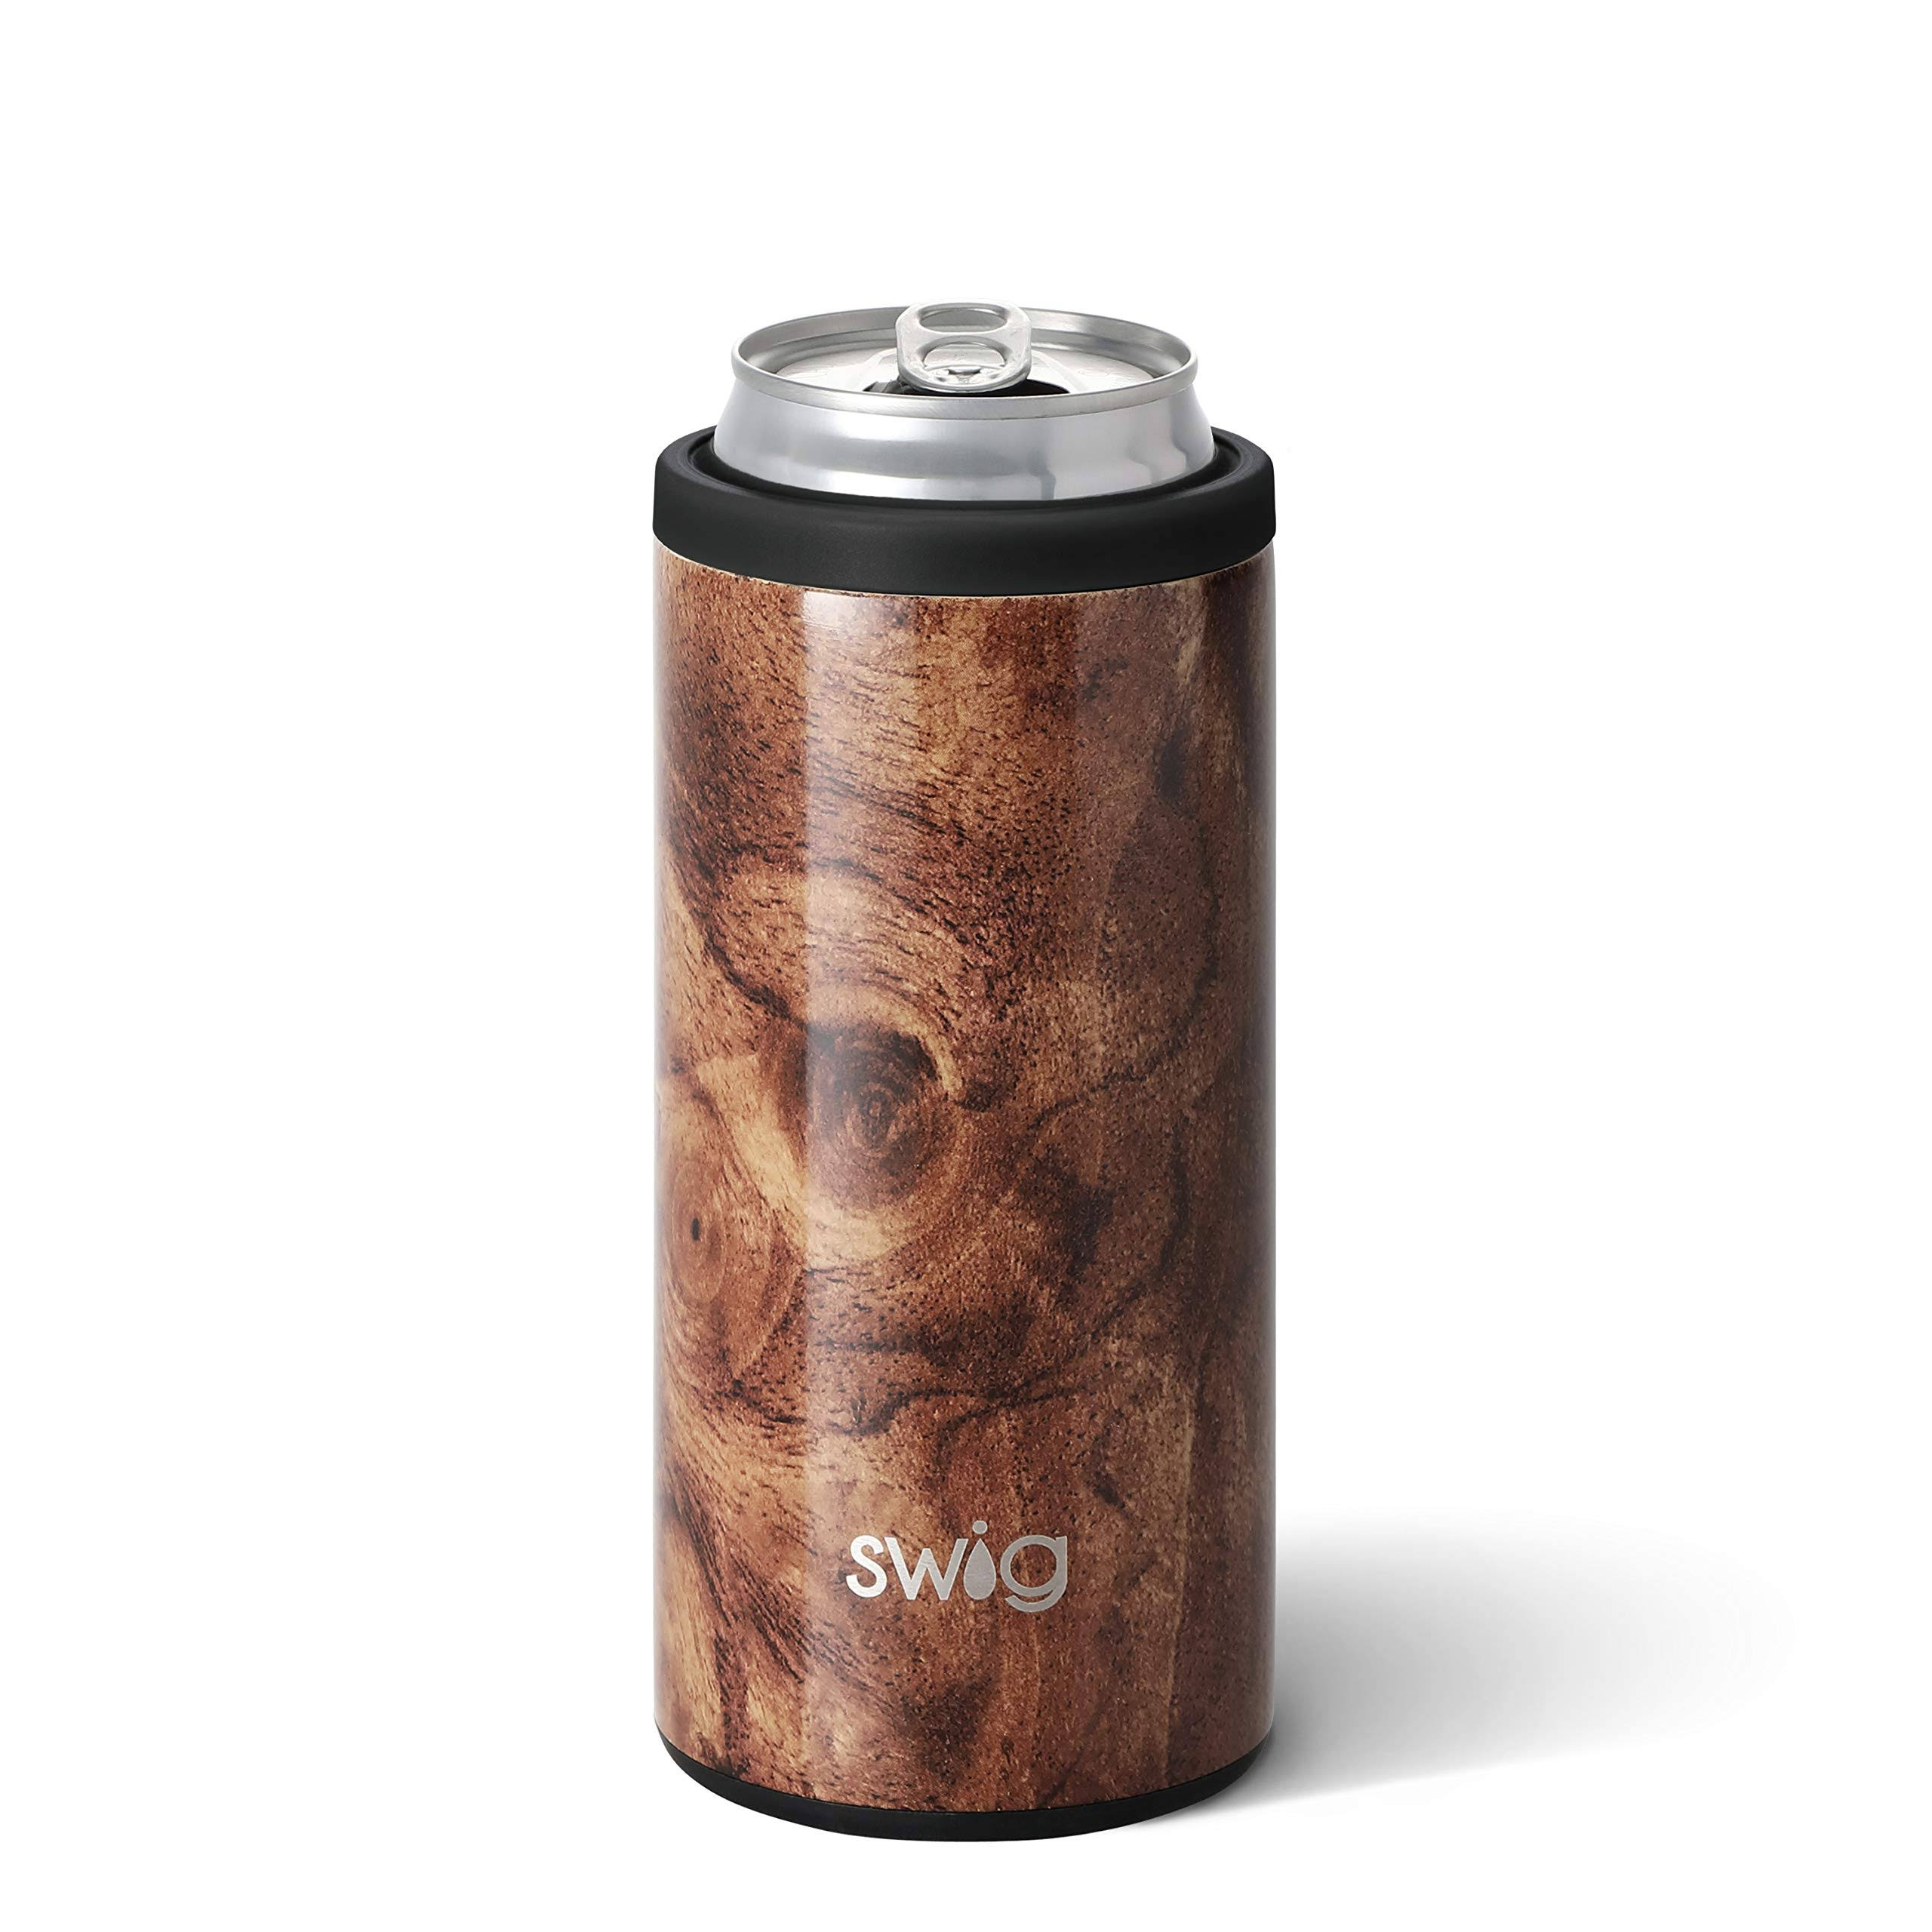 Swig Life 12oz Stainless Steel Skinny Can Cooler in Black Walnut